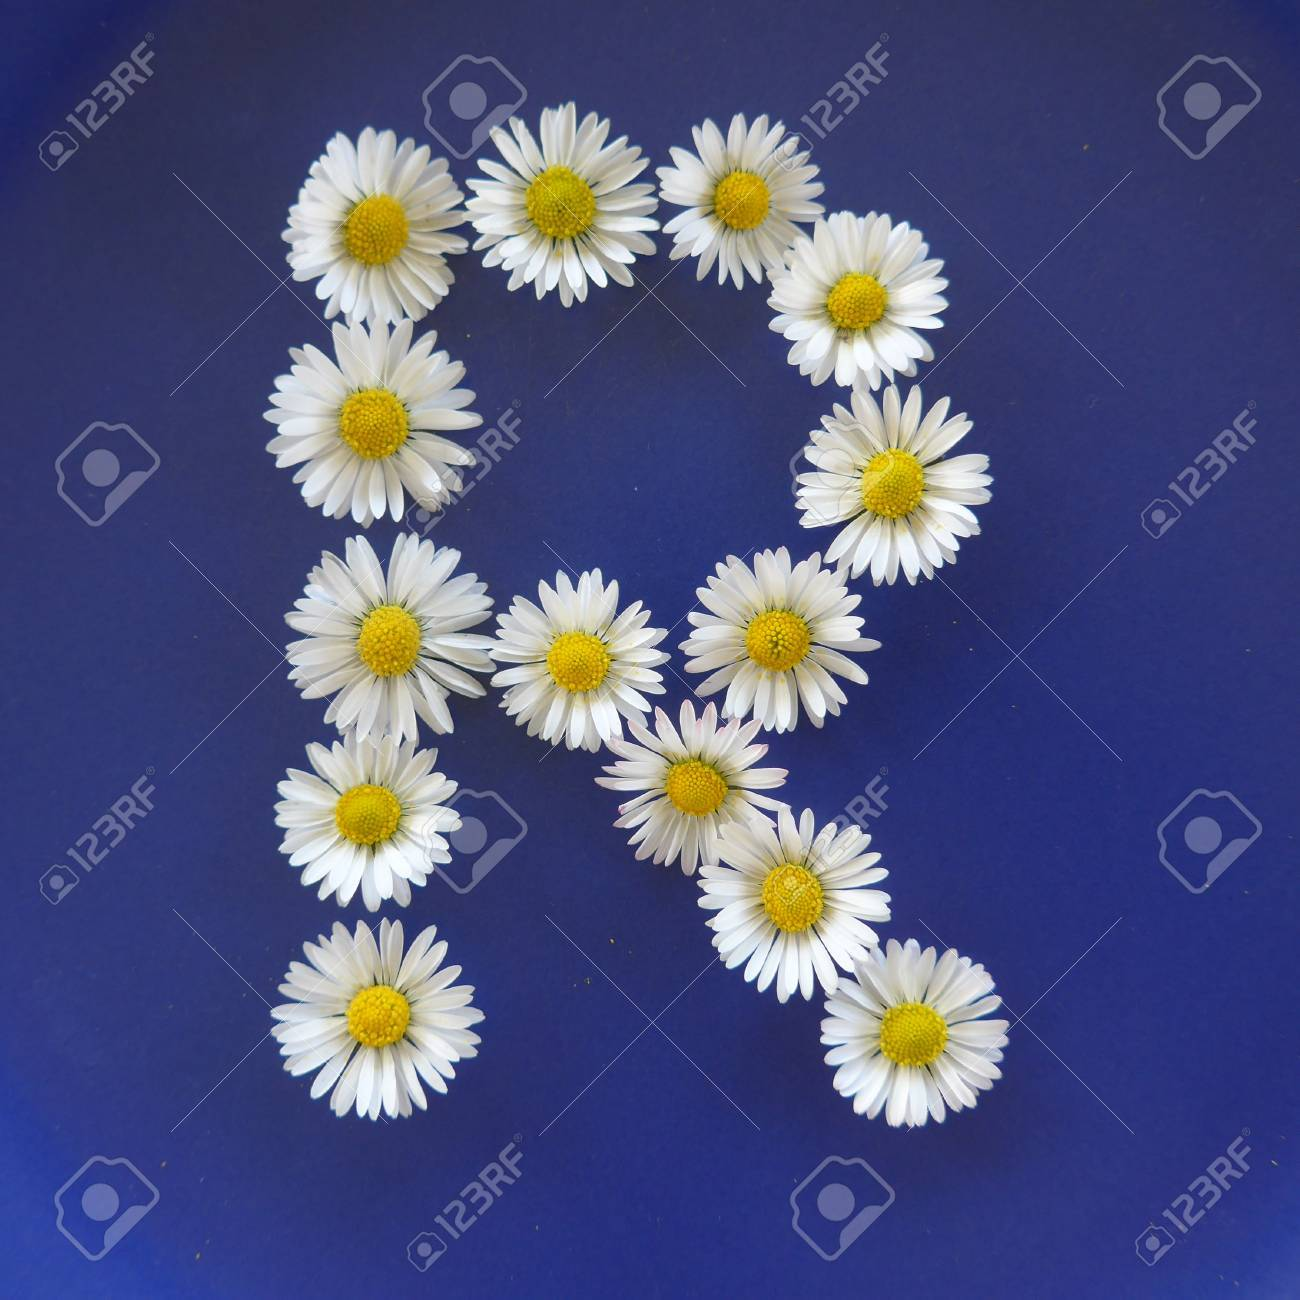 Letter r from white flowers daisies bellis perennis close up letter r from white flowers daisies bellis perennis close up on izmirmasajfo